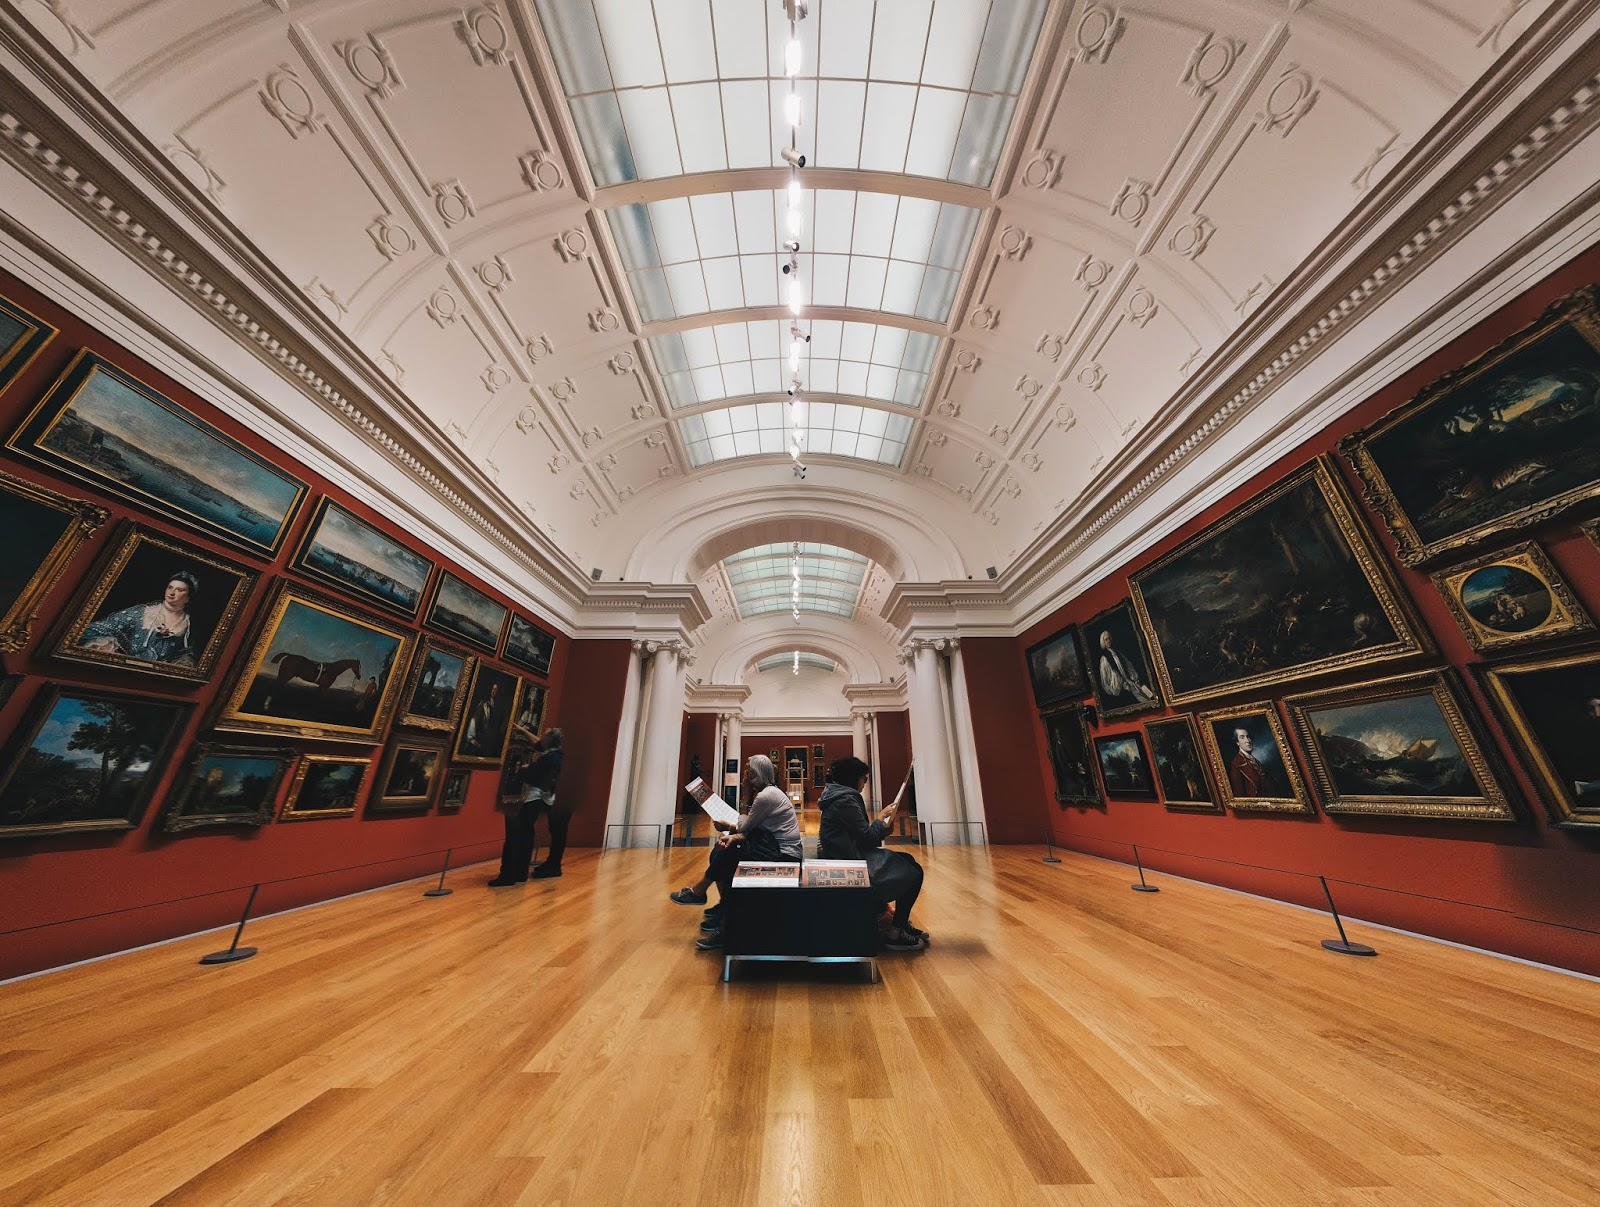 A photo looking down a room in an art gallery with paintings on the walls on either side, with a bench in the middle with people sitting and sketching, and two people looking at the paintings on the left - photo taken in Auckland Art Gallery Toi o Tāmaki, Auckland, New Zealand